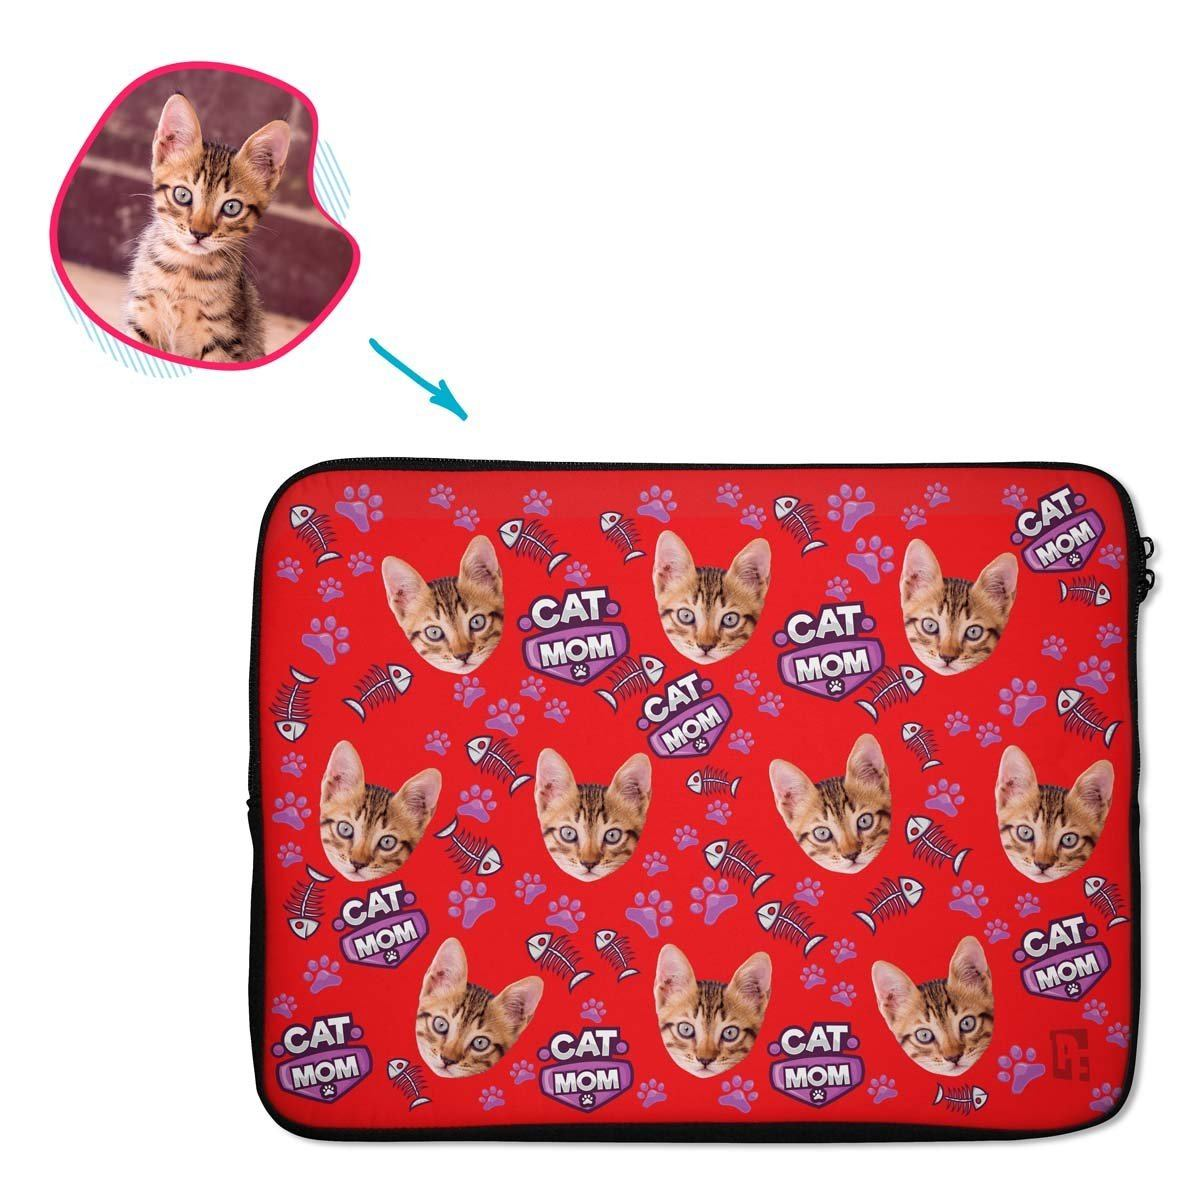 red Cat Mom laptop sleeve personalized with photo of face printed on them